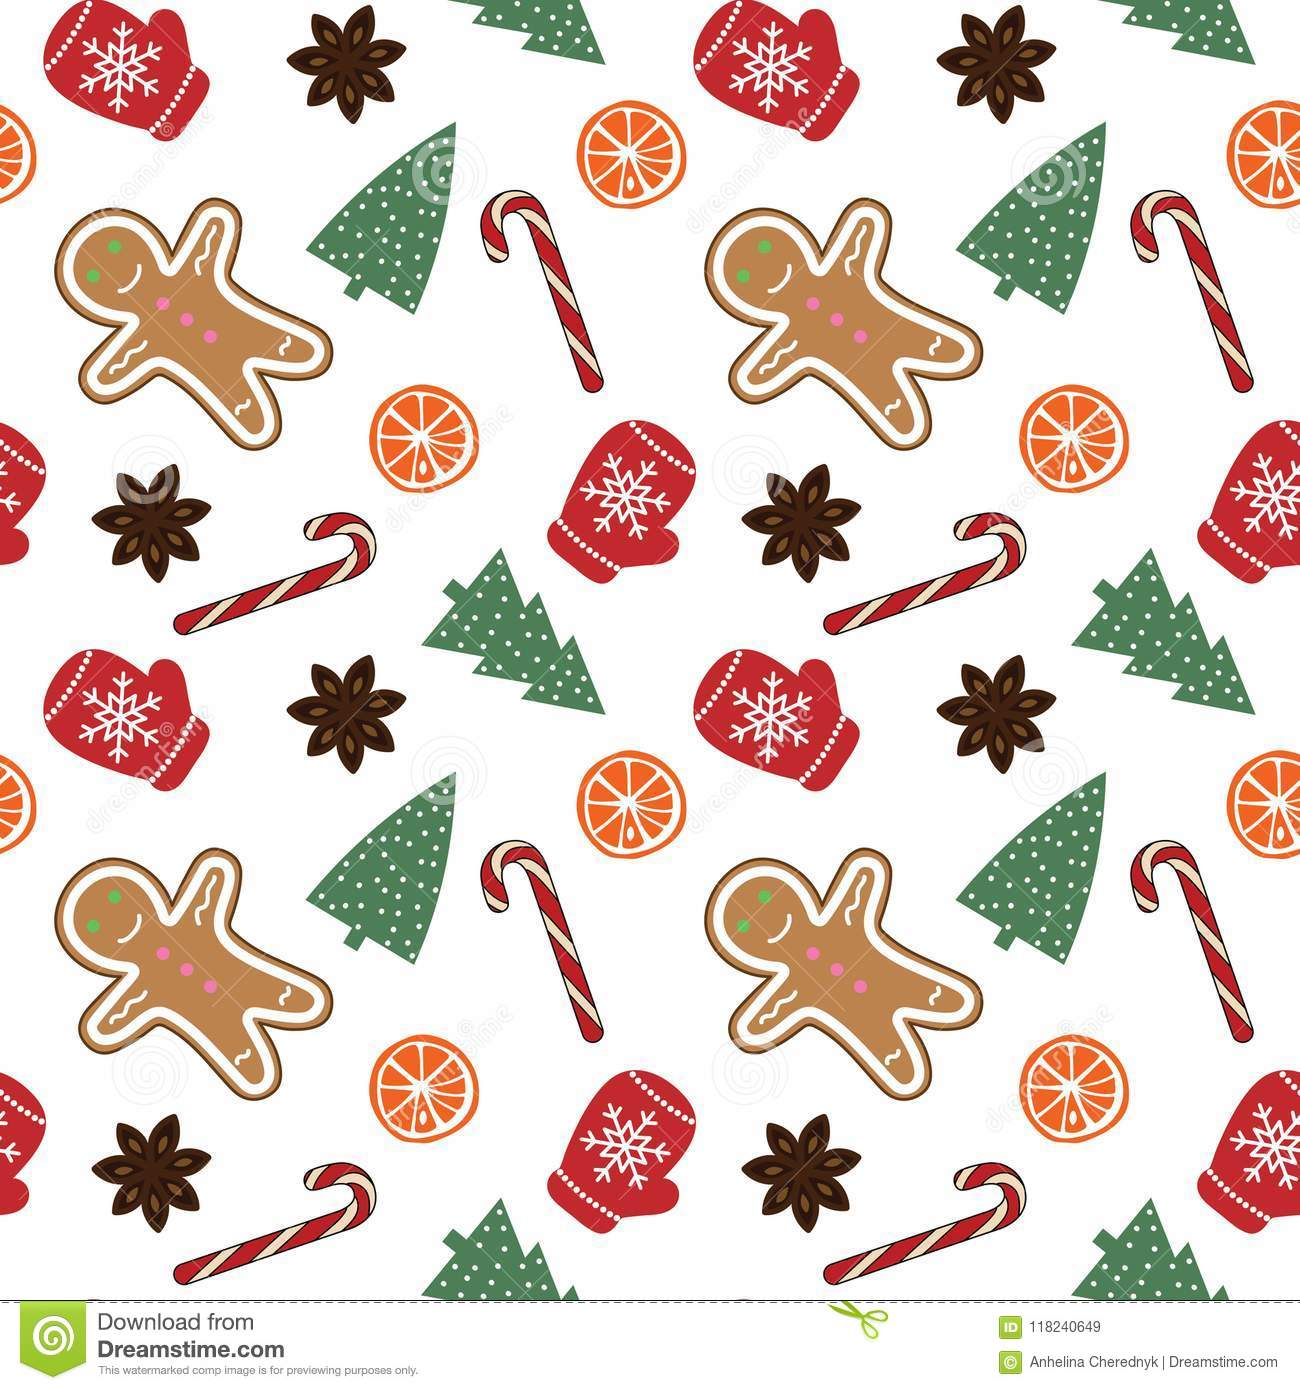 cute red mittens snowflakes glove green christmas tree cand candy cane gingerbread man orange cinnamon white background 118240649